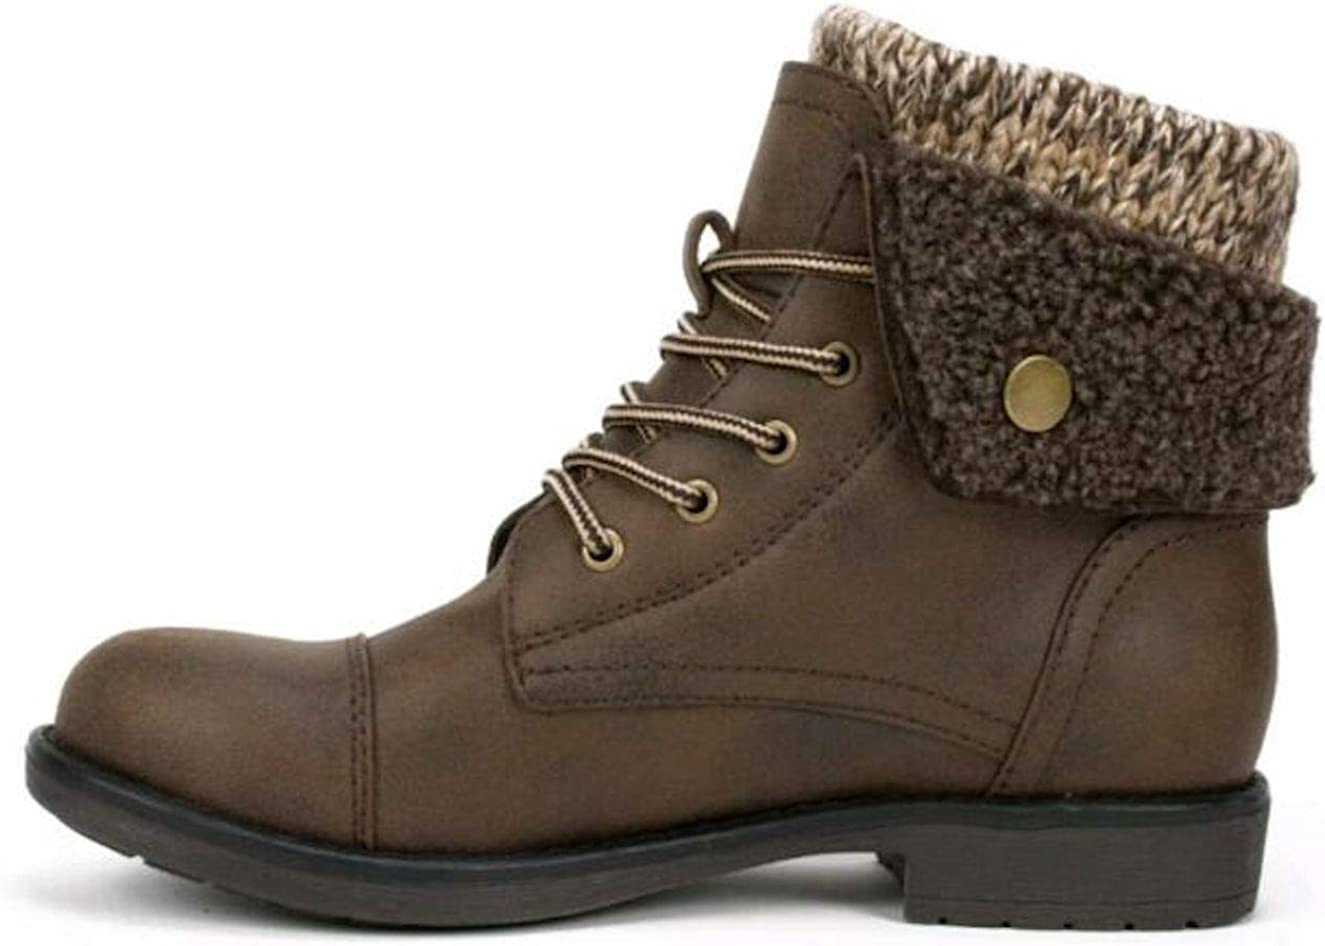 Cliffs by White Mountain Womens Decker Fabric Round Toe Ankle Fashion Boots